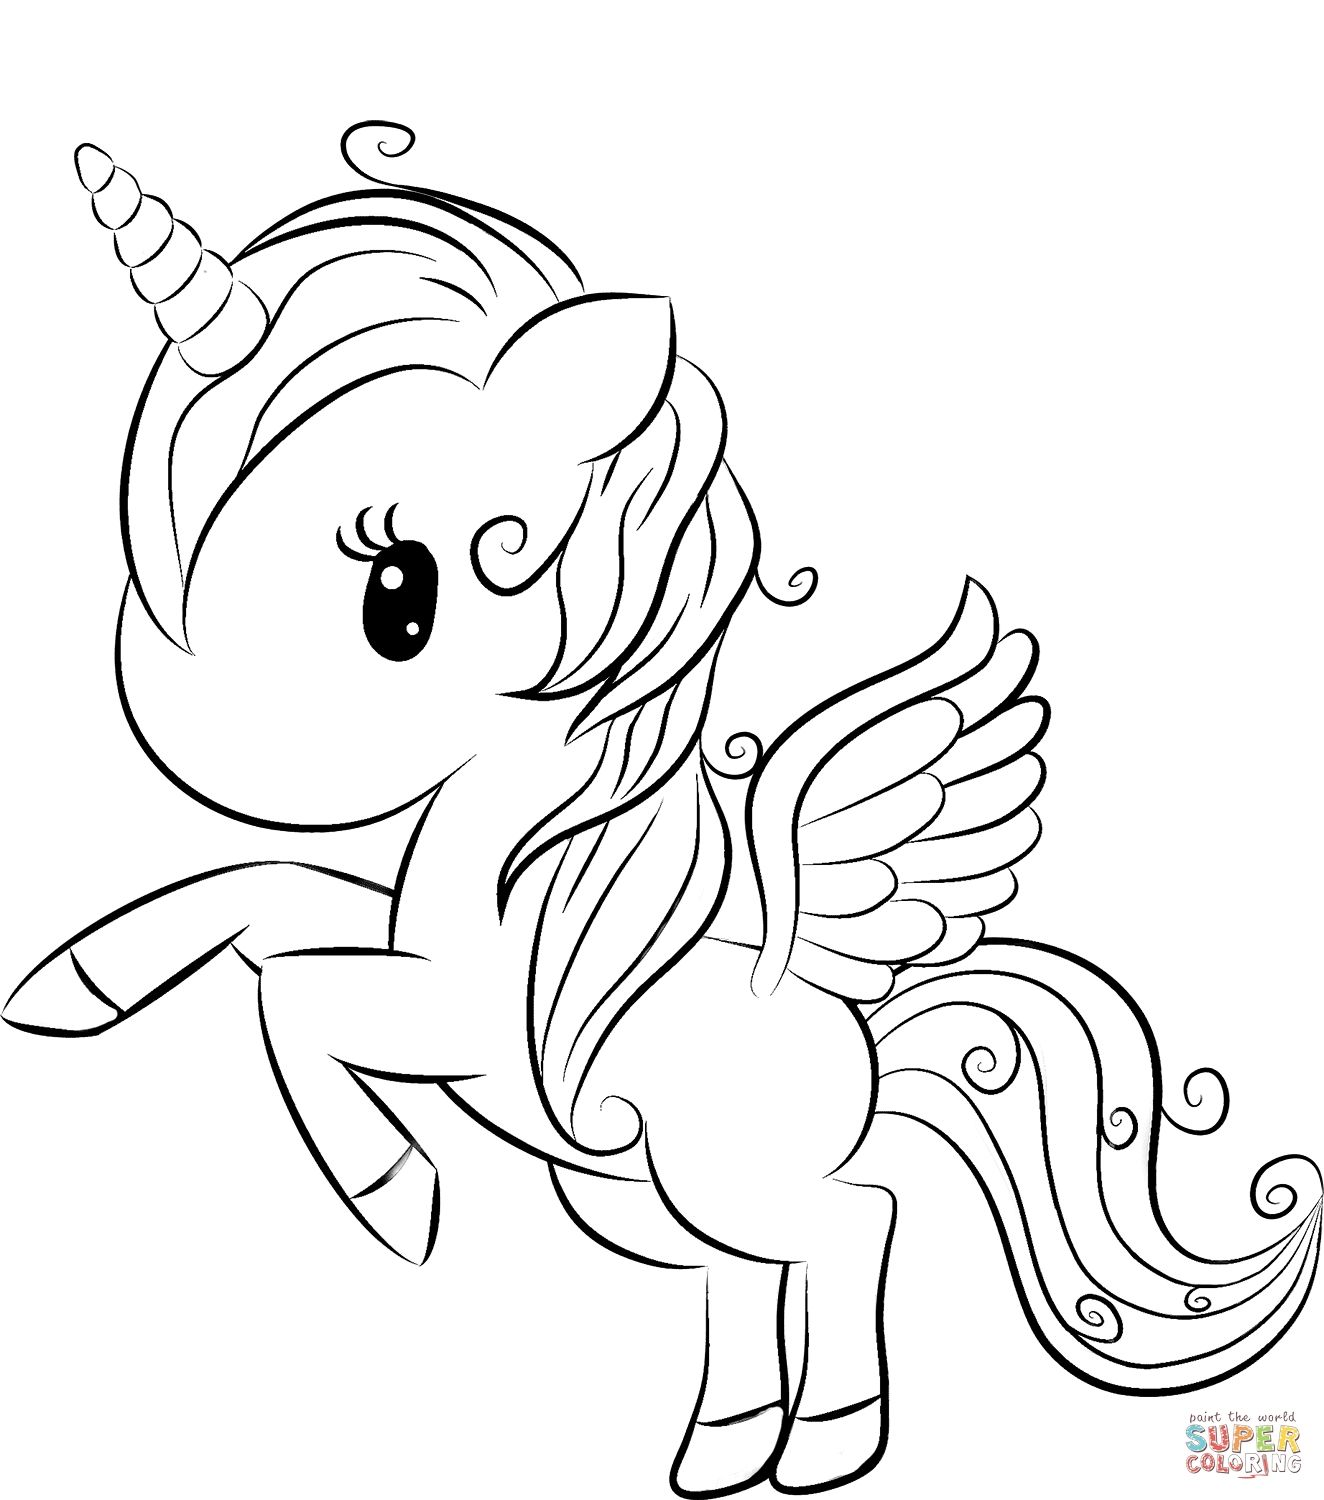 Unicorn Coloring Pages Free Printable Free Online Printable Unicorn Coloring Pages Free Prin Unicorn Coloring Pages Animal Coloring Pages Cute Coloring Pages